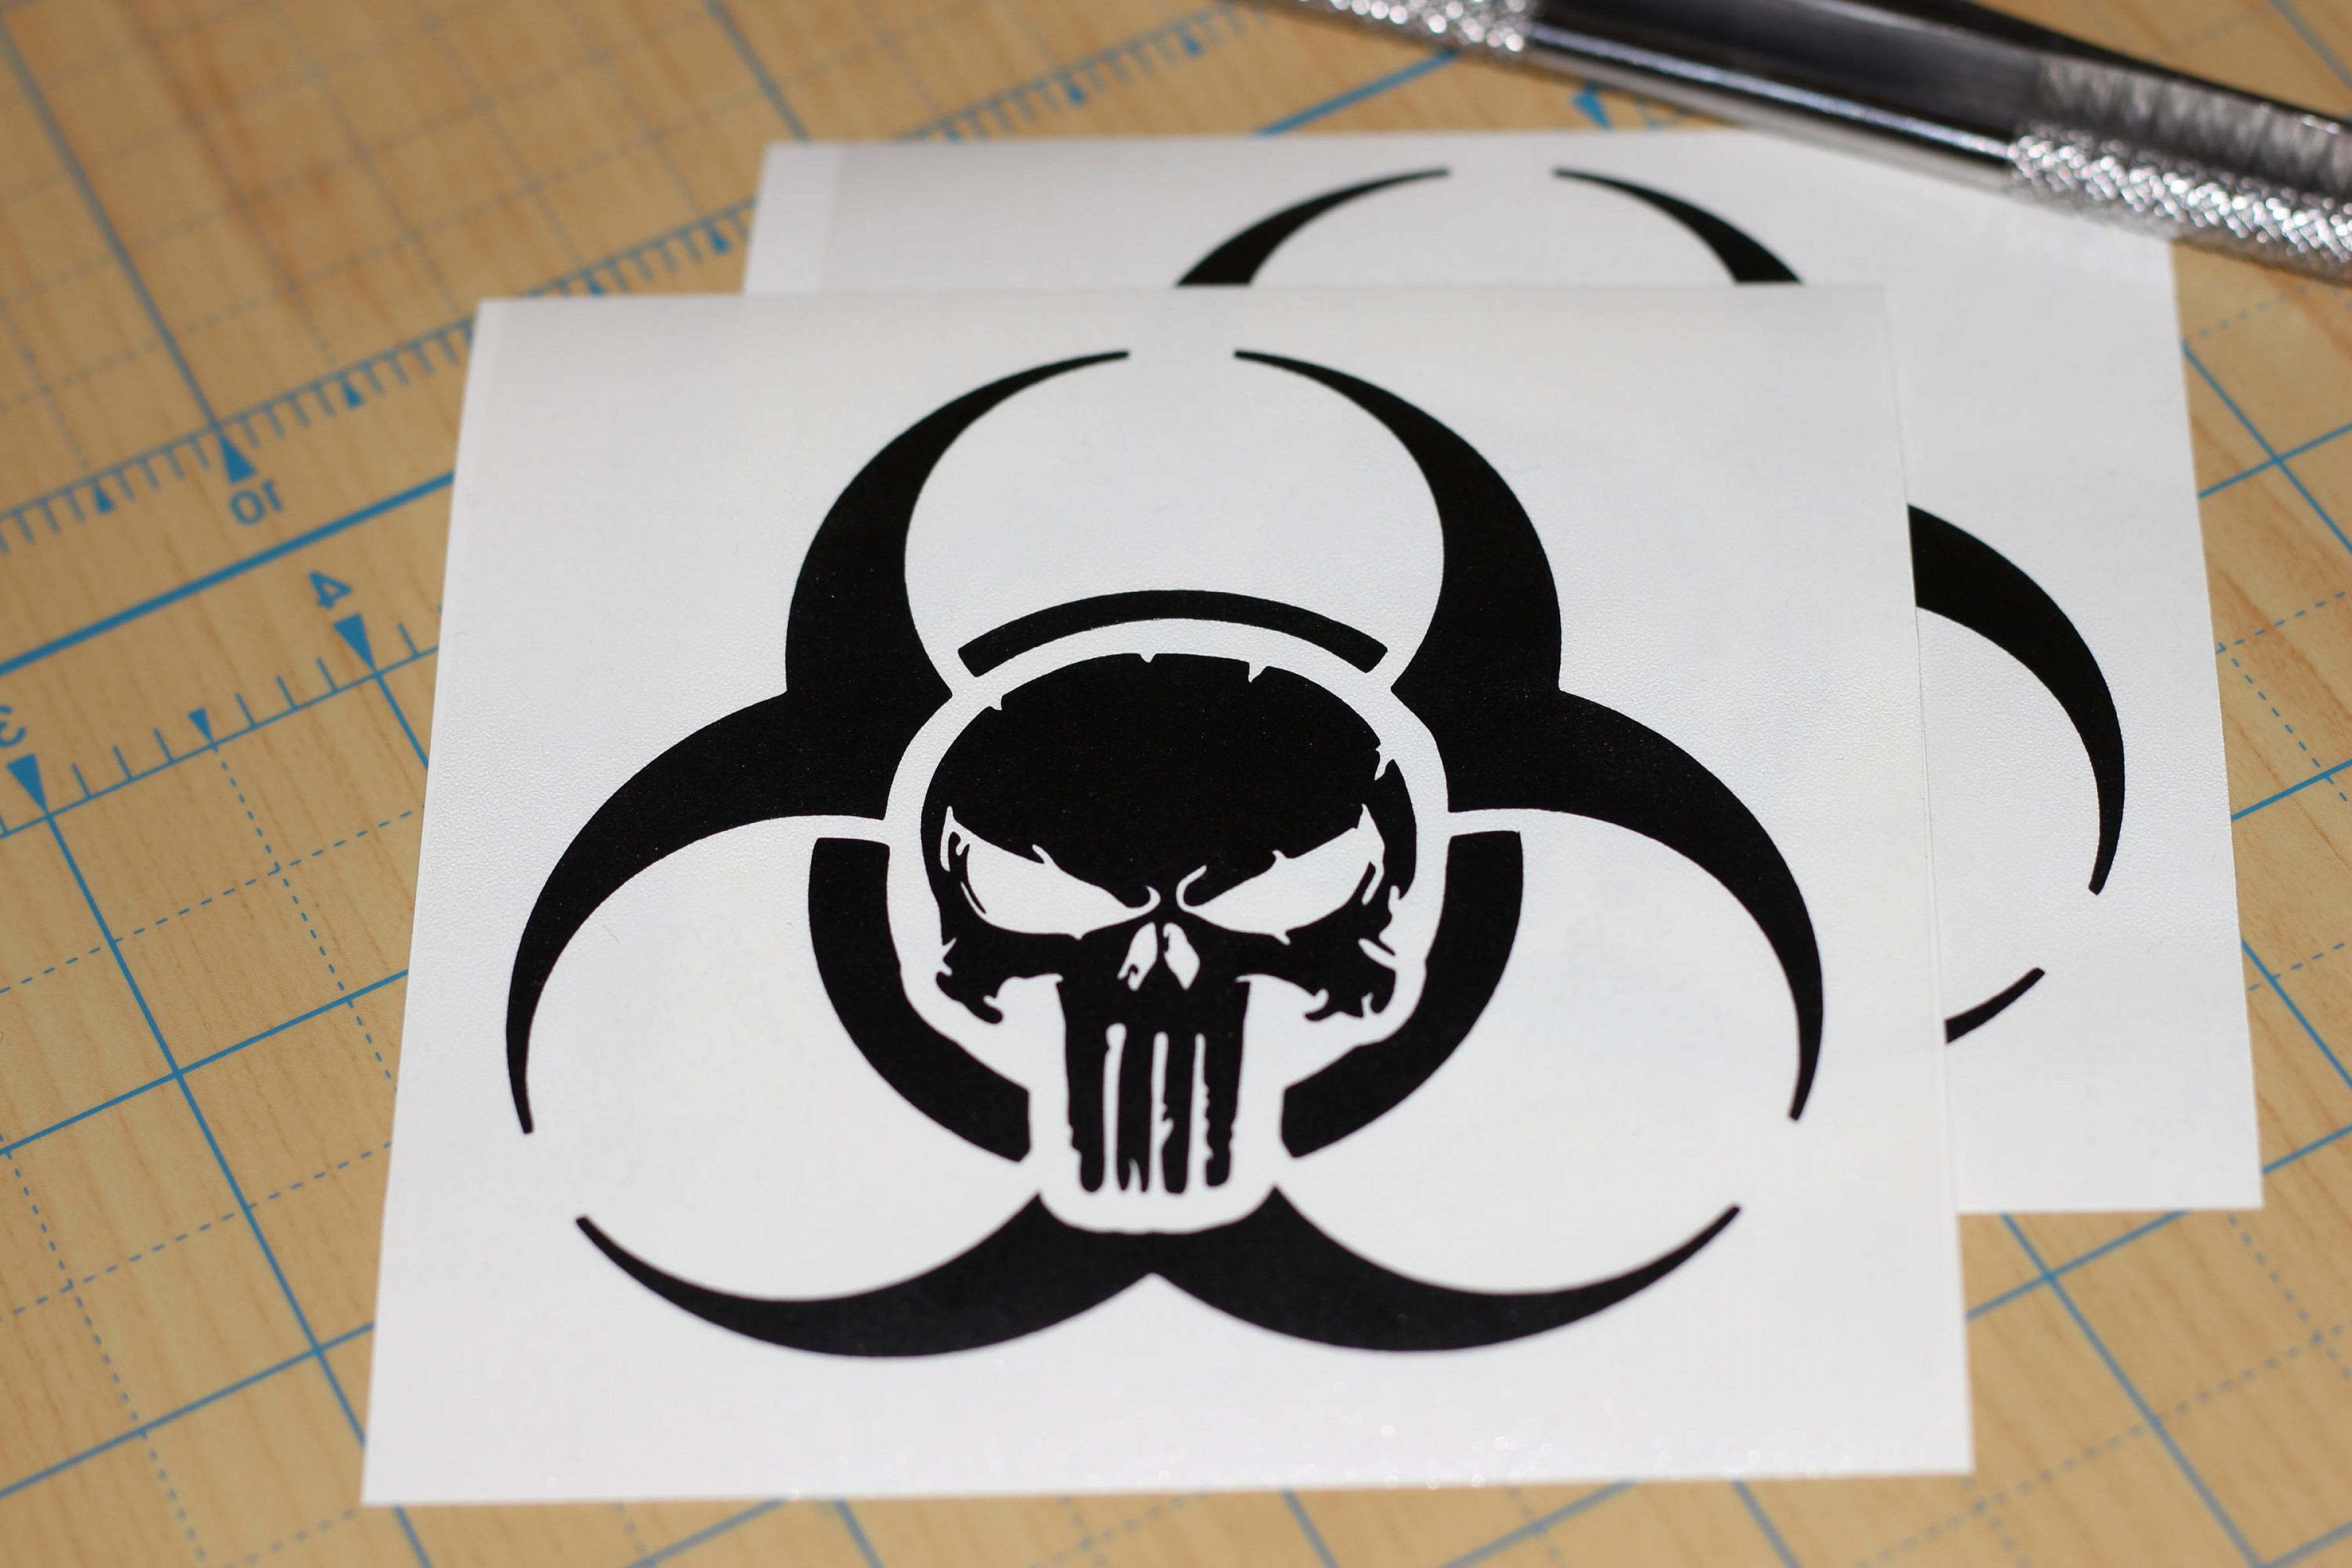 3600x2400 Jeep Punisher Skull Vector Arenawp